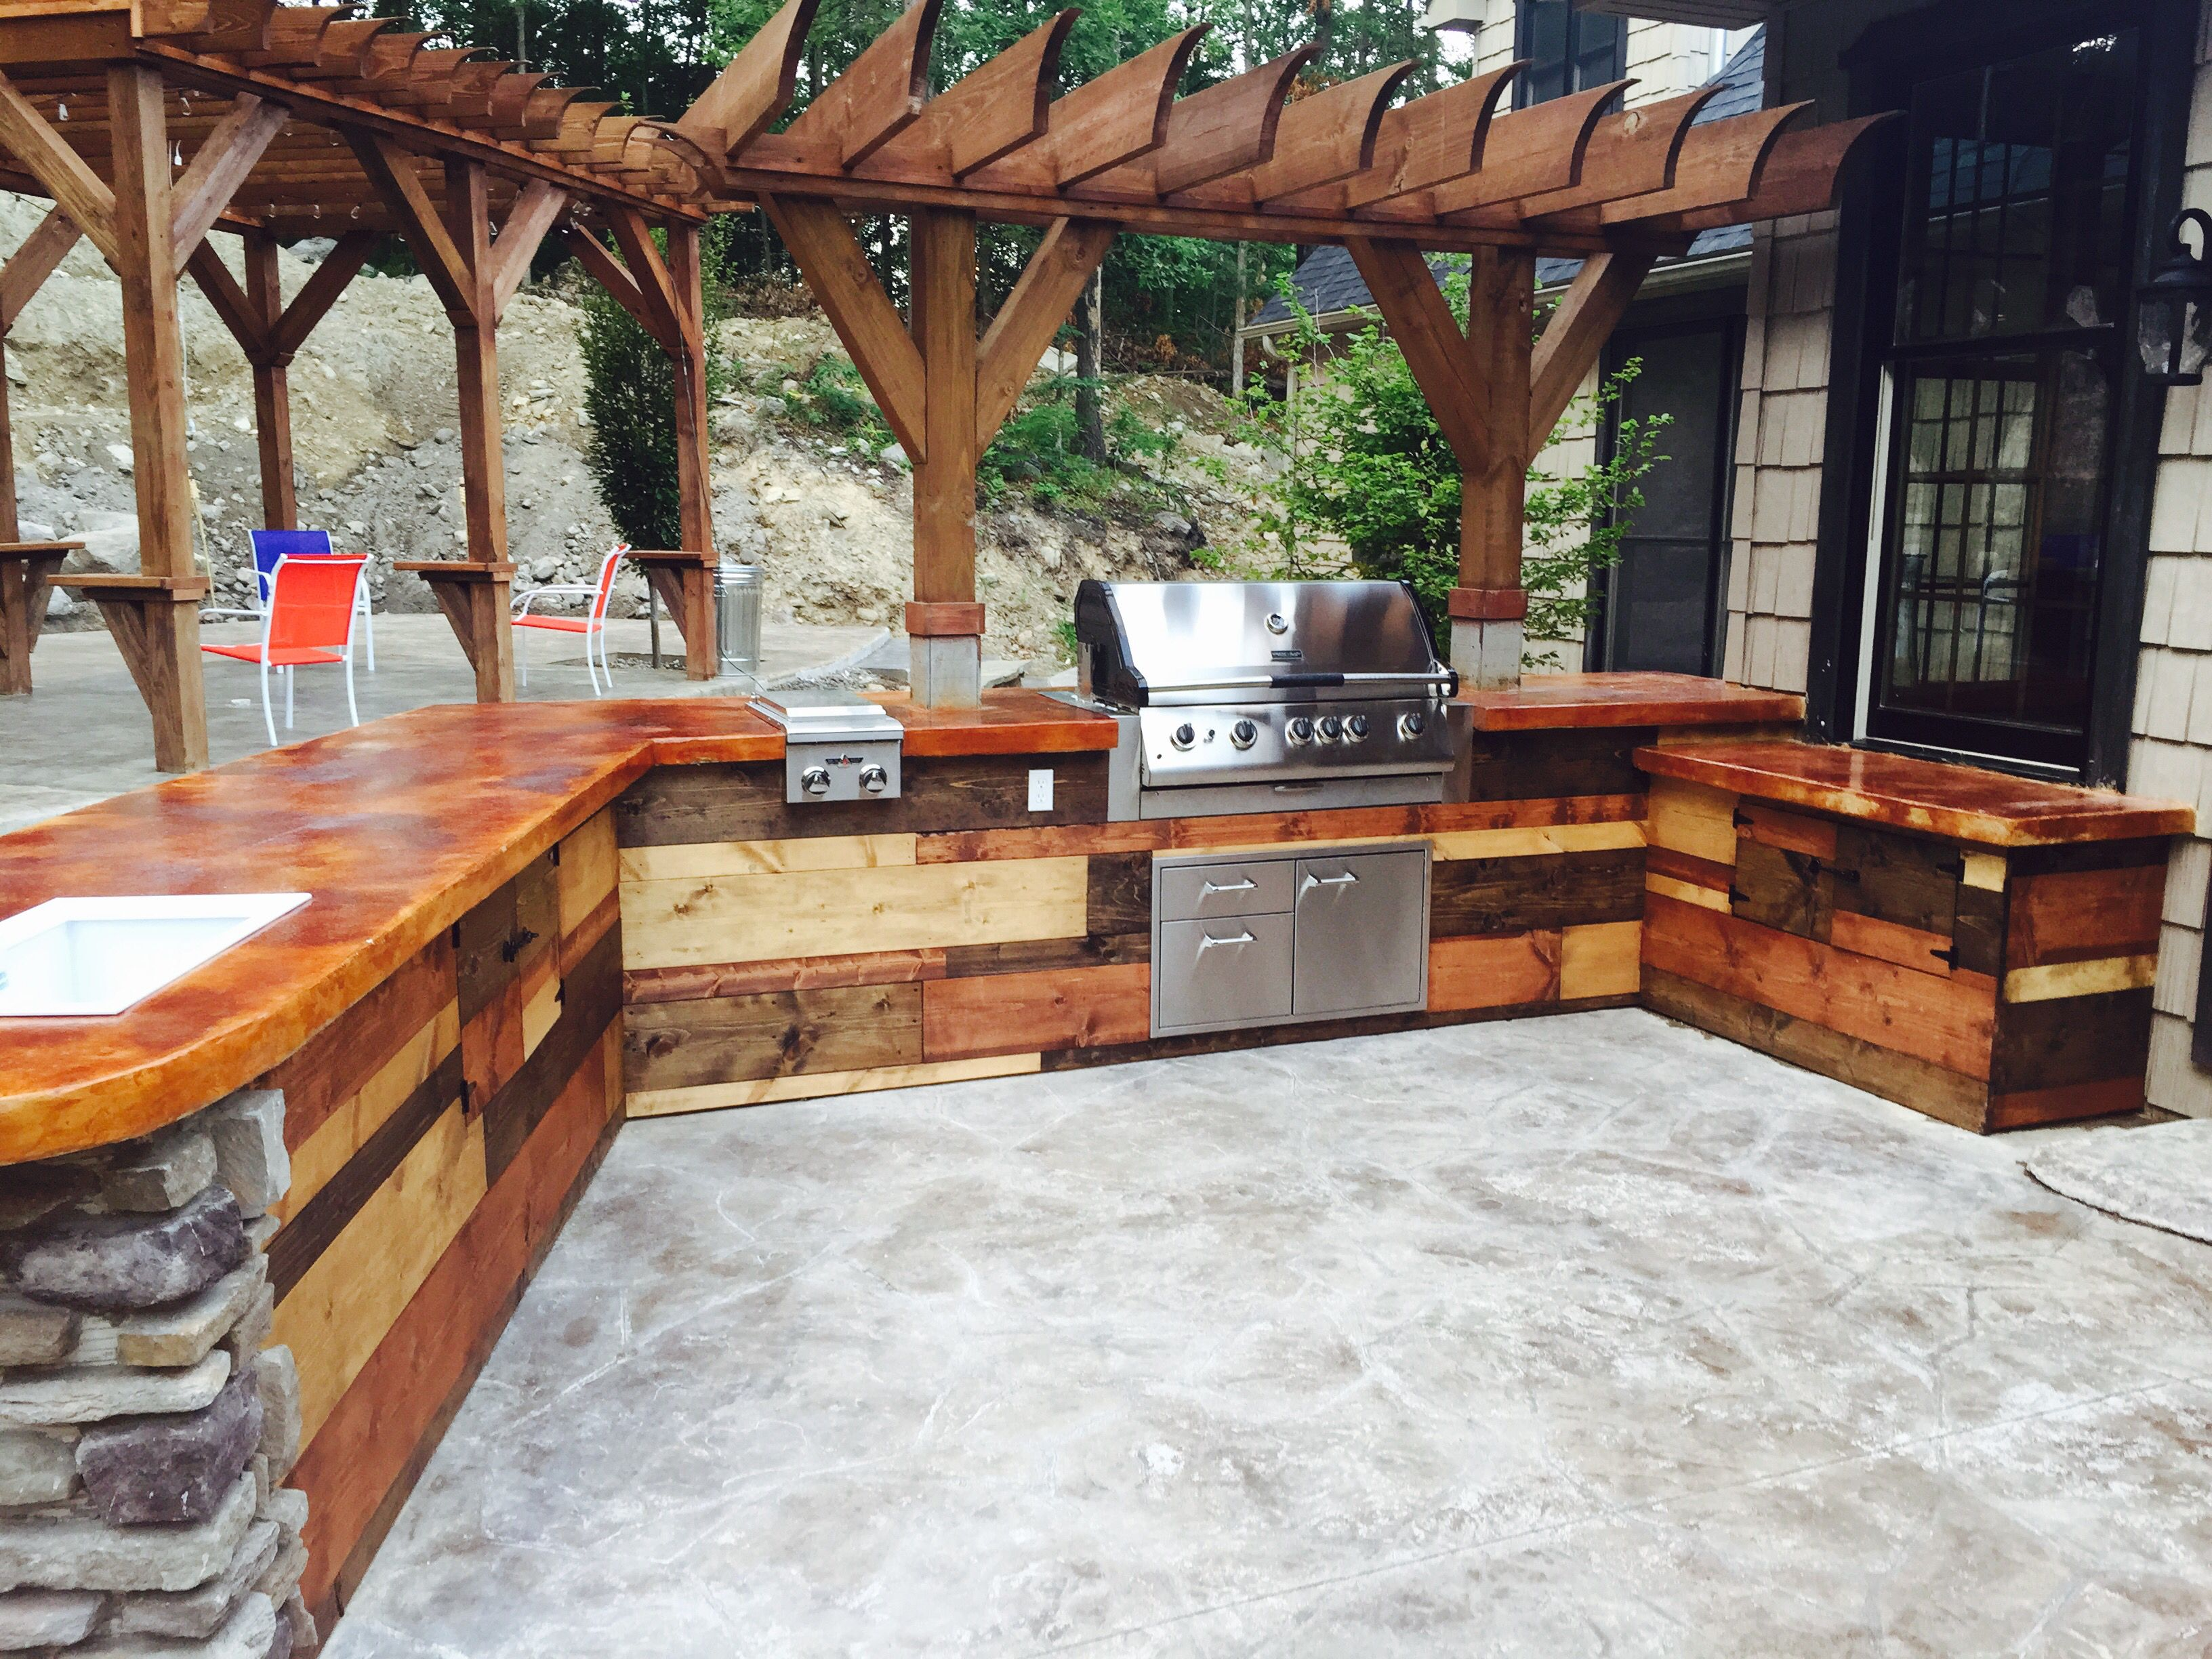 Grill, Concrete Countertop, Mixed Wood Rustic Cabinets, Stamped Concrete  Patio.